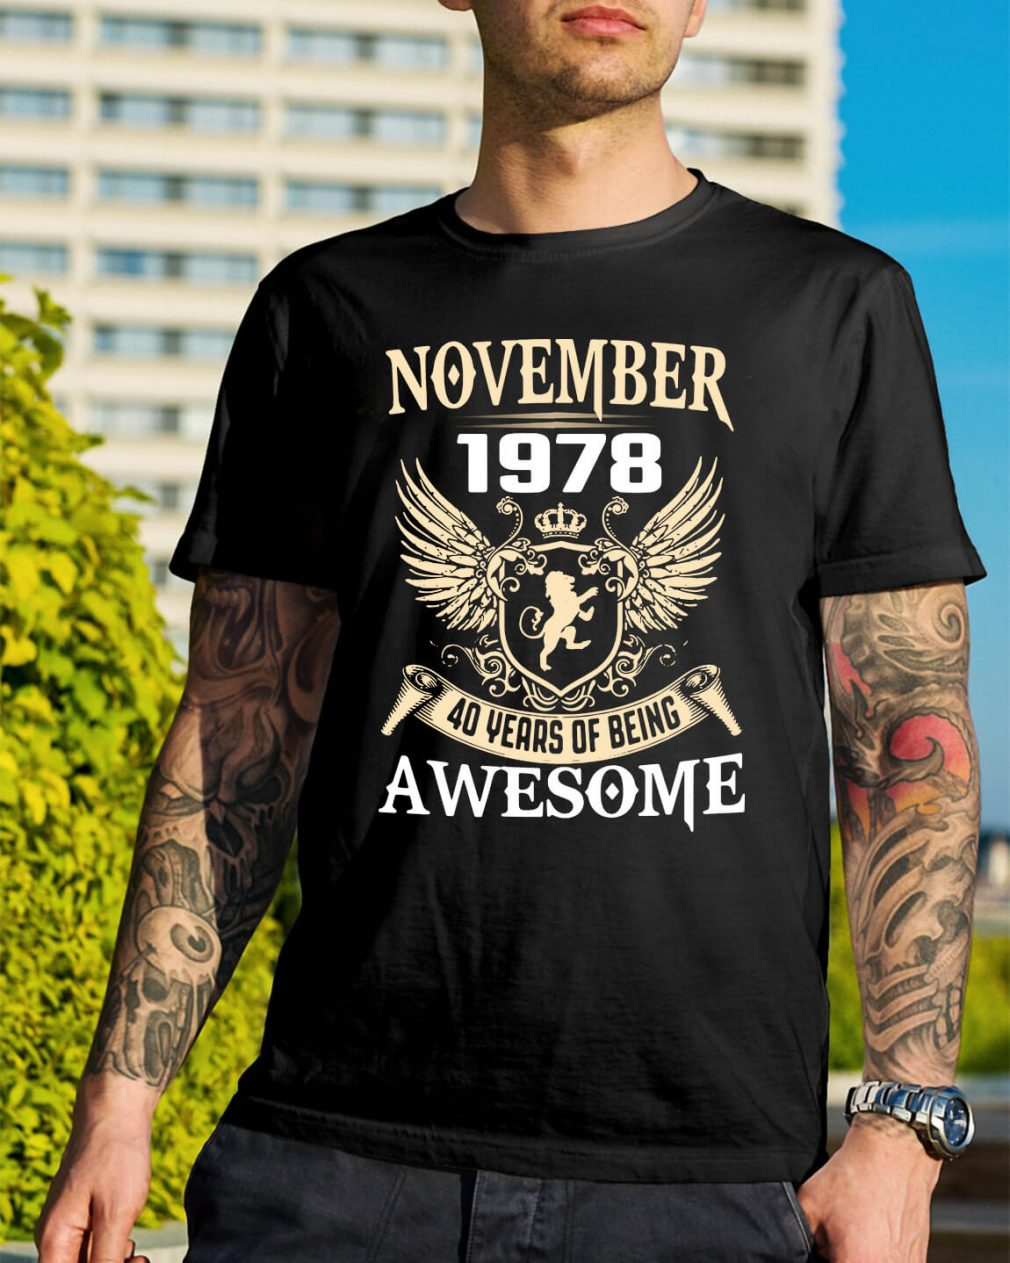 November 1978 40 years of being awesome shirt